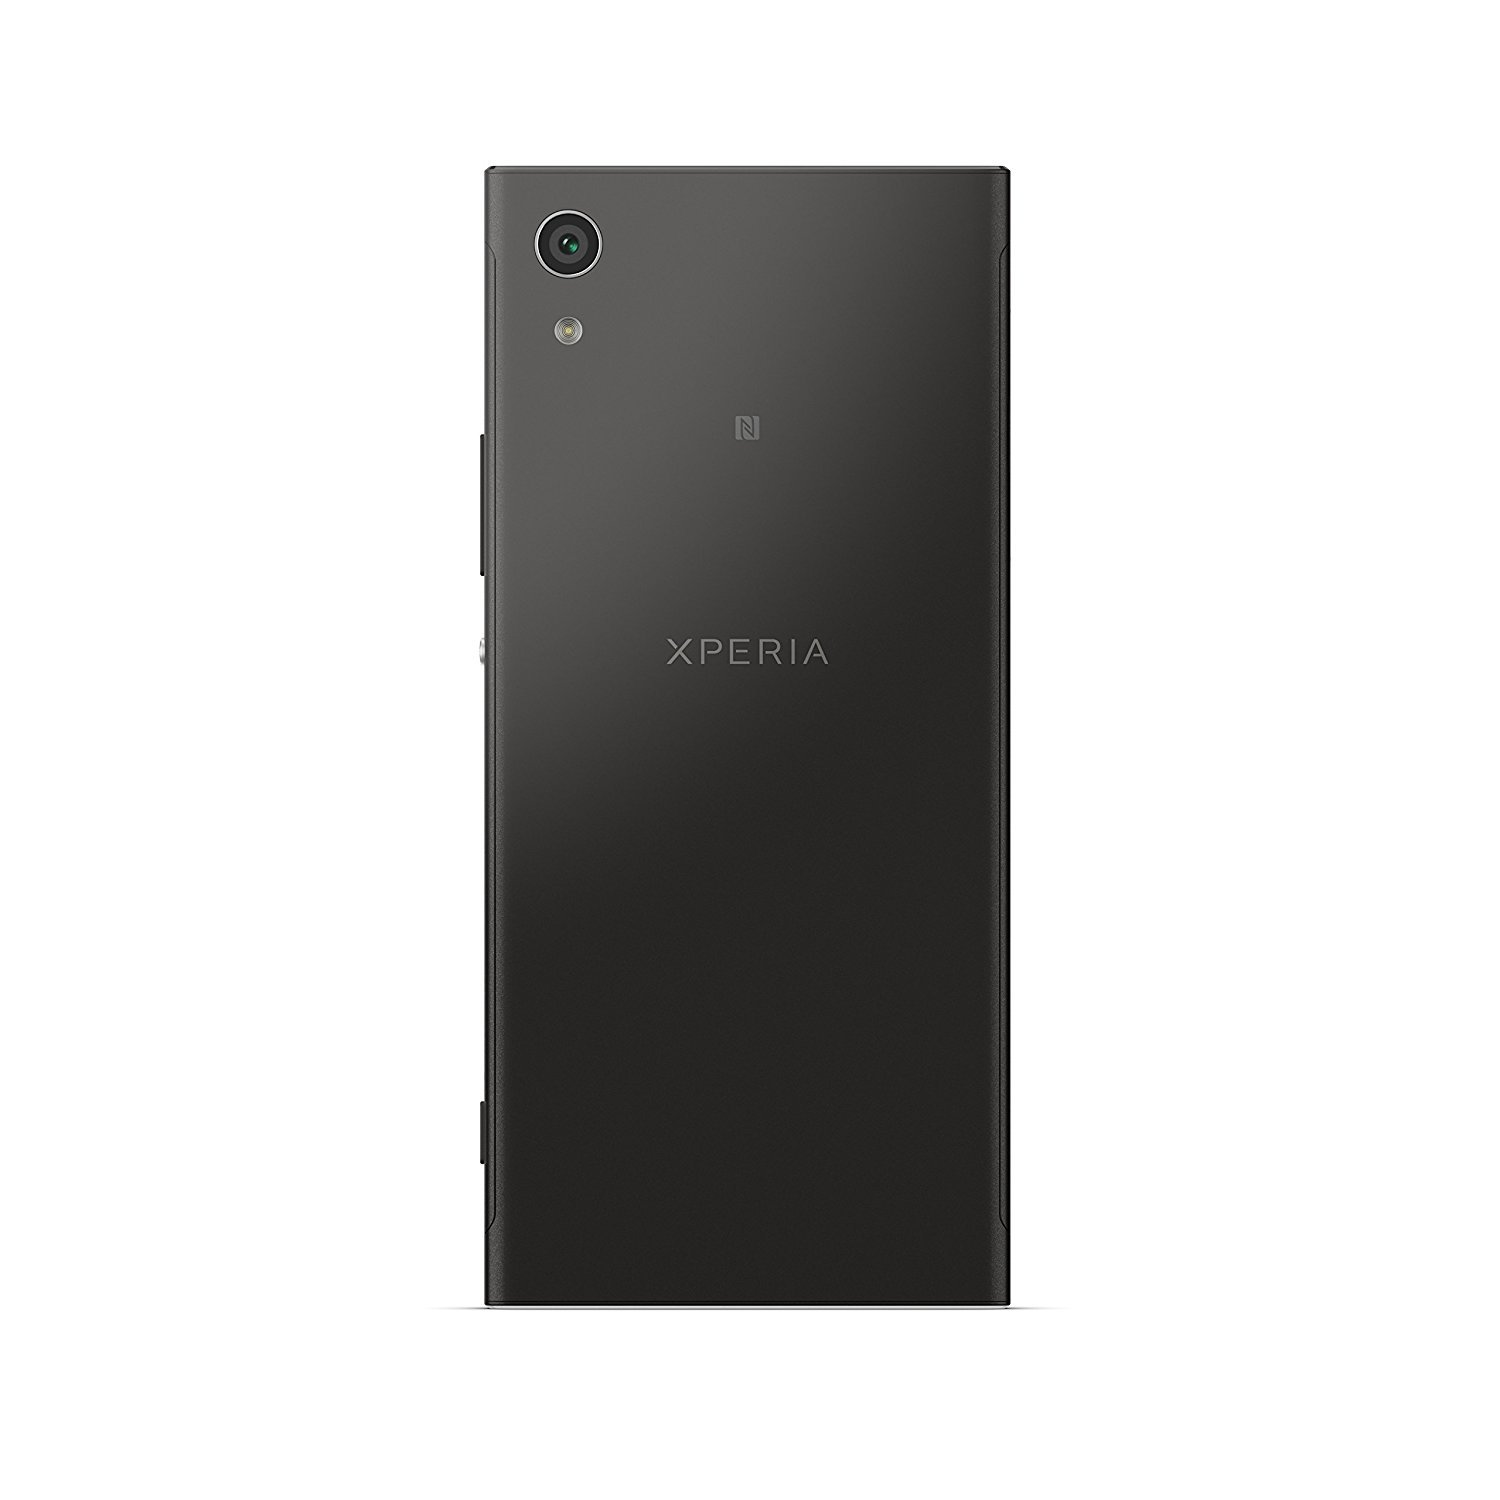 sony xperia xa1 specs review release date phonesdata. Black Bedroom Furniture Sets. Home Design Ideas